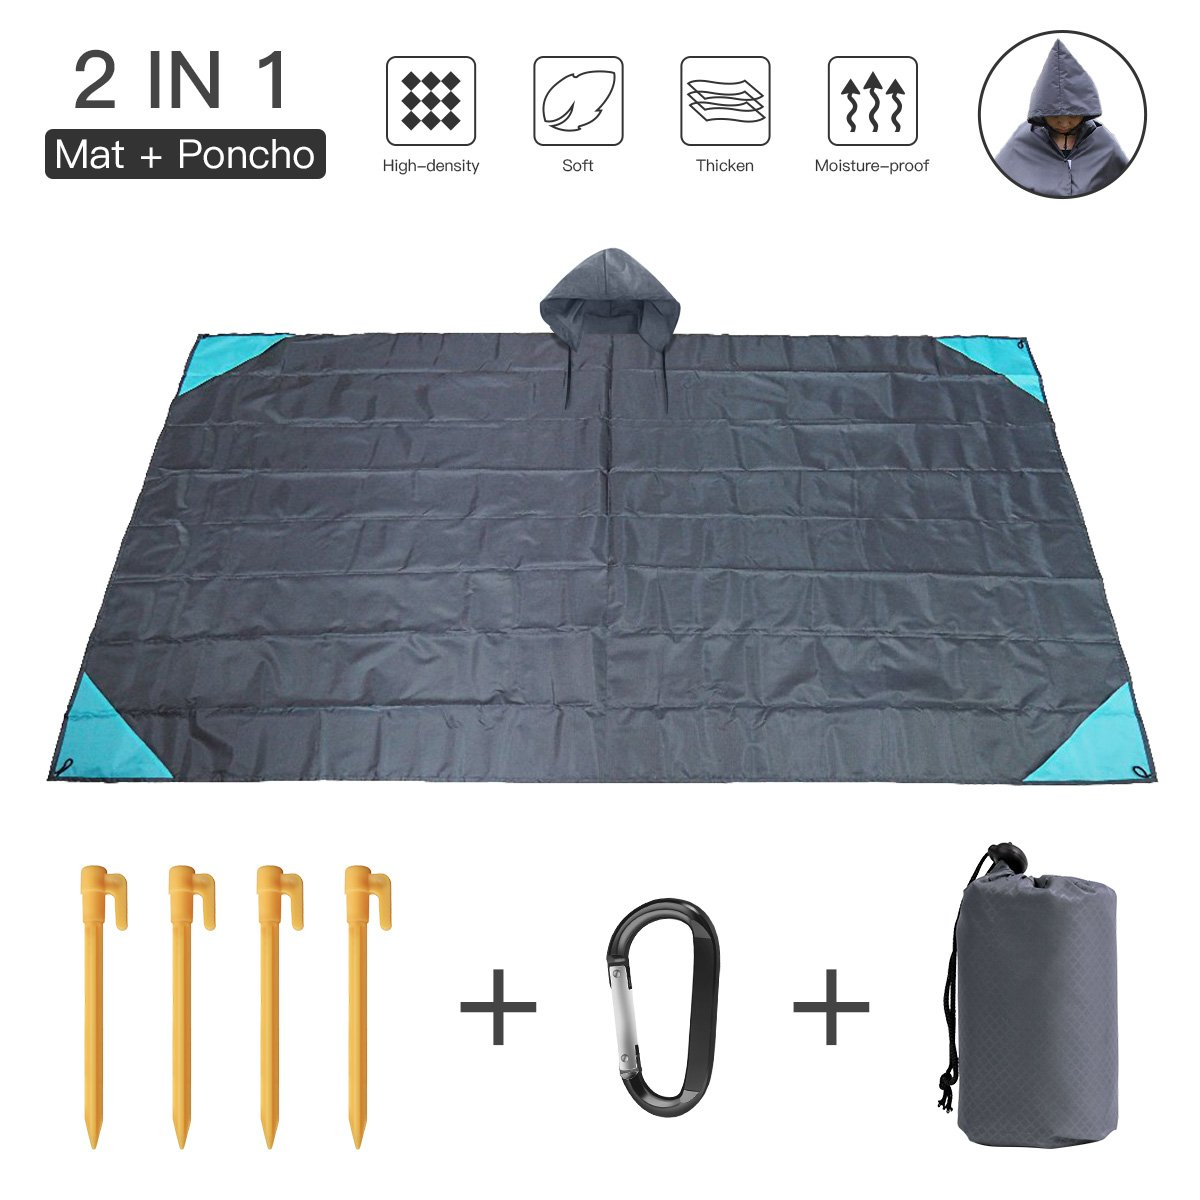 Pocket Beach Blanket Oversized Picnic Blanket 55x79 Inch, Water Resistant Sand Free Nylon Outdoor Blankets, Lightweight Portable Picnic Mat with 4 Stakes, Carabiner (Gray) by Cenfenner